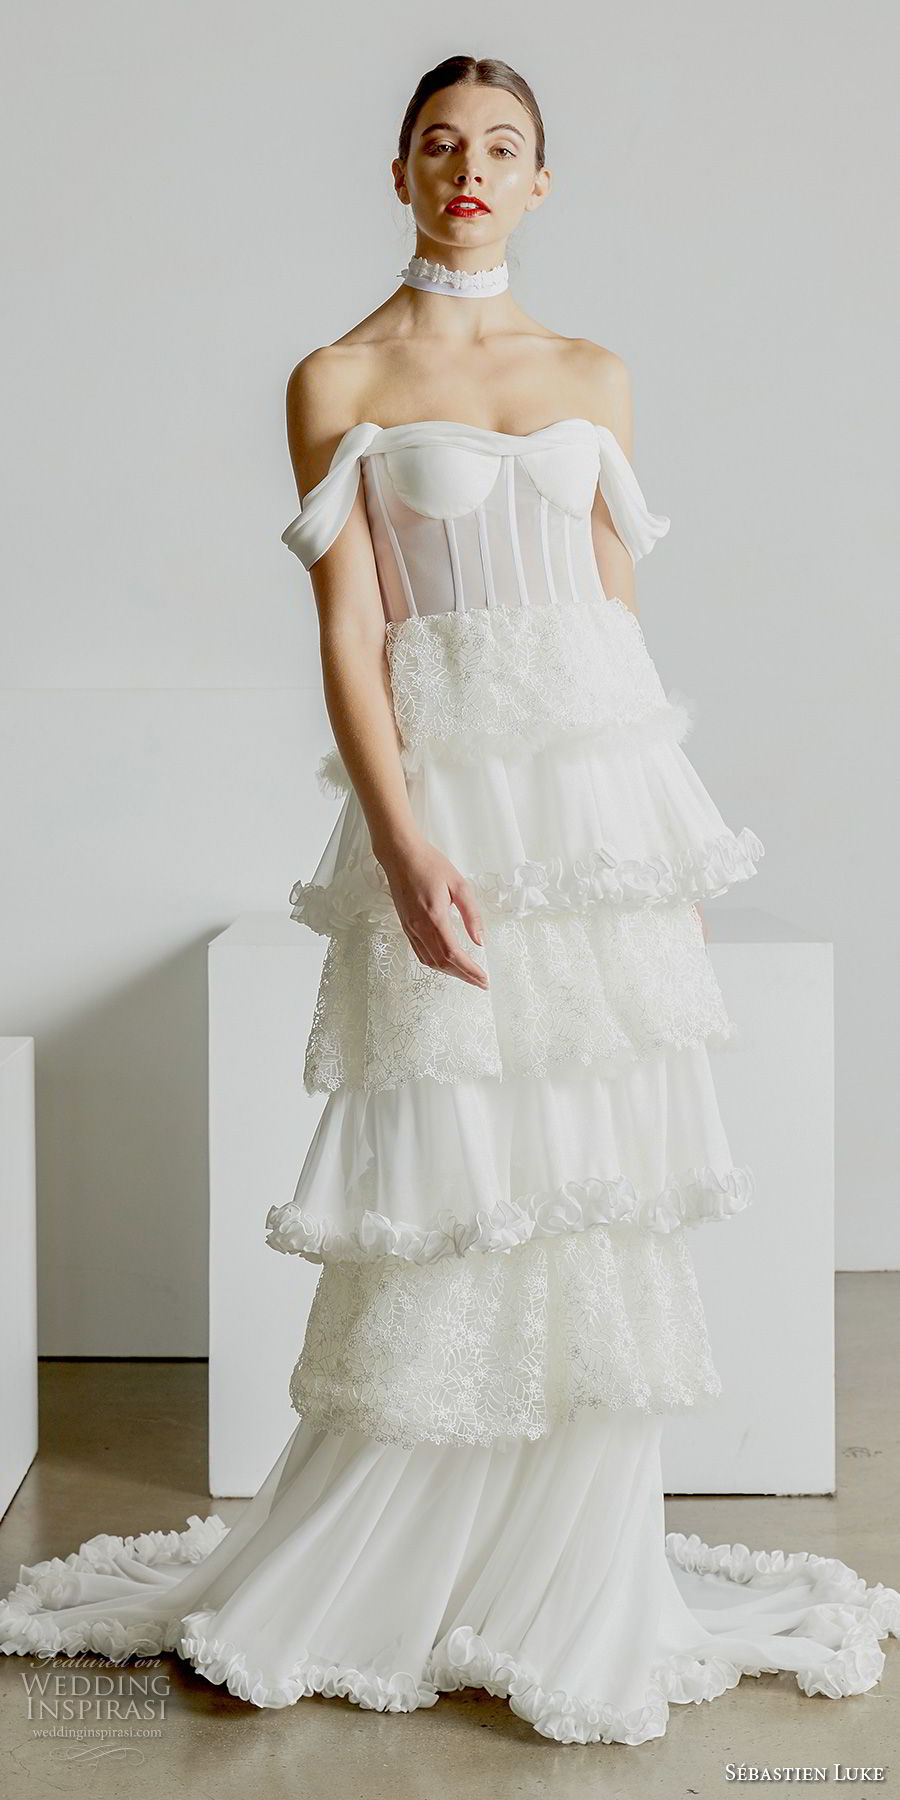 Sbastien Luke Spring 2019 Wedding Dresses Wedding Inspirasi